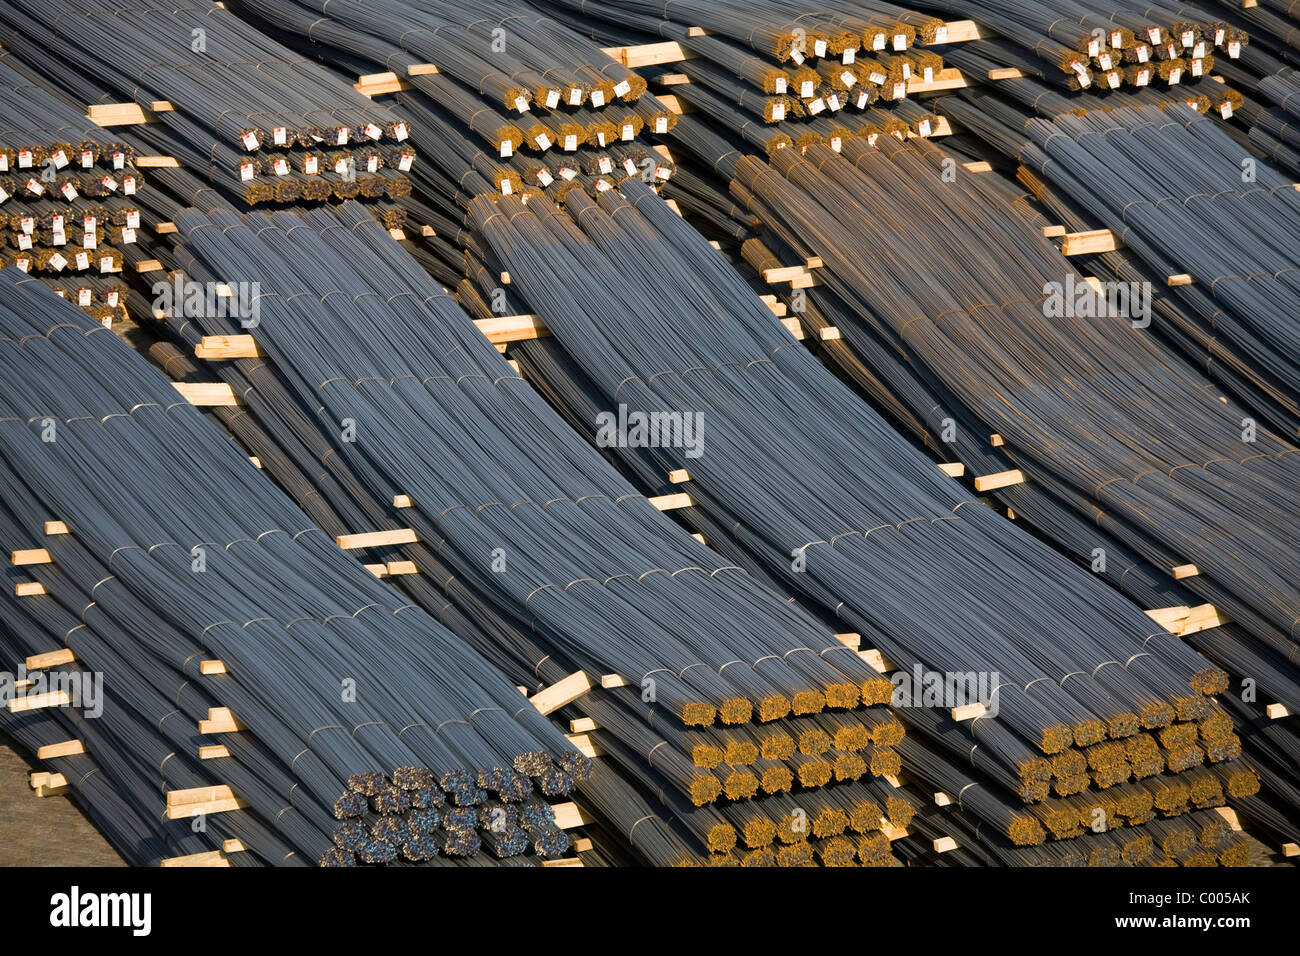 Steel rods in Leixoes Port, Porto, Portugal, Europe Stock Photo